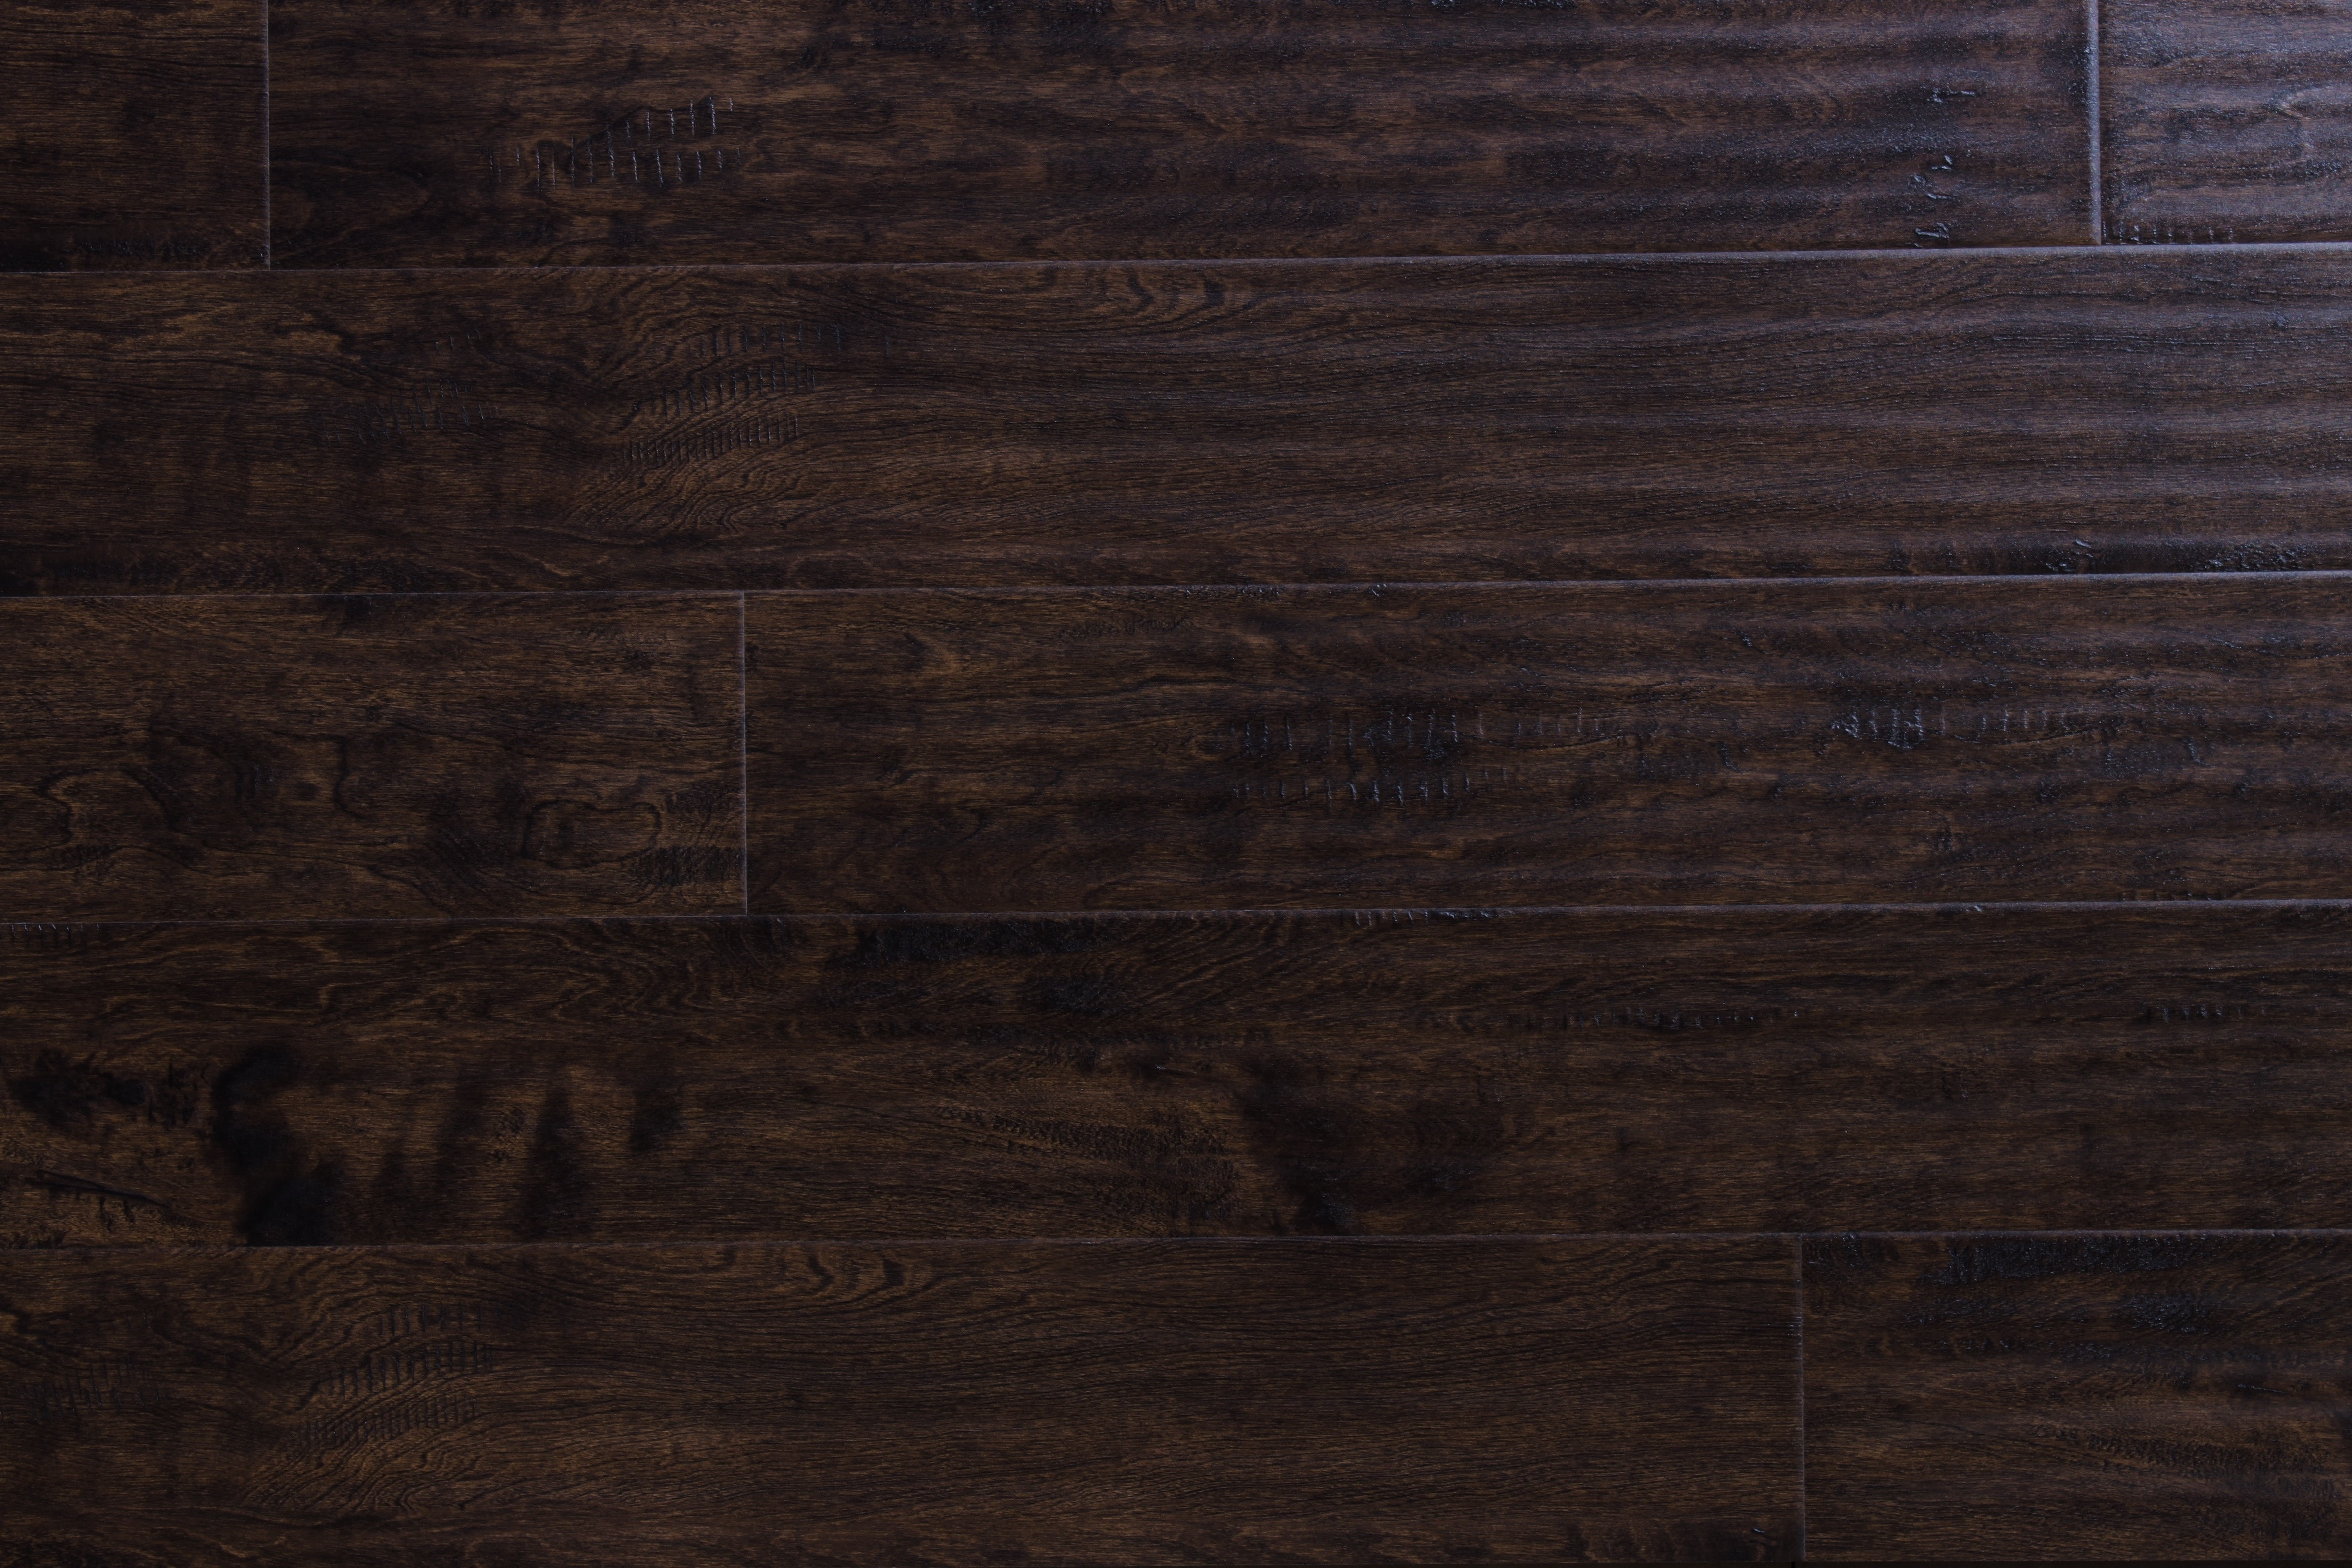 hardwood floors denver wholesale of wood flooring free samples available at builddirecta throughout tailor multi gb 5874277bb8d3c